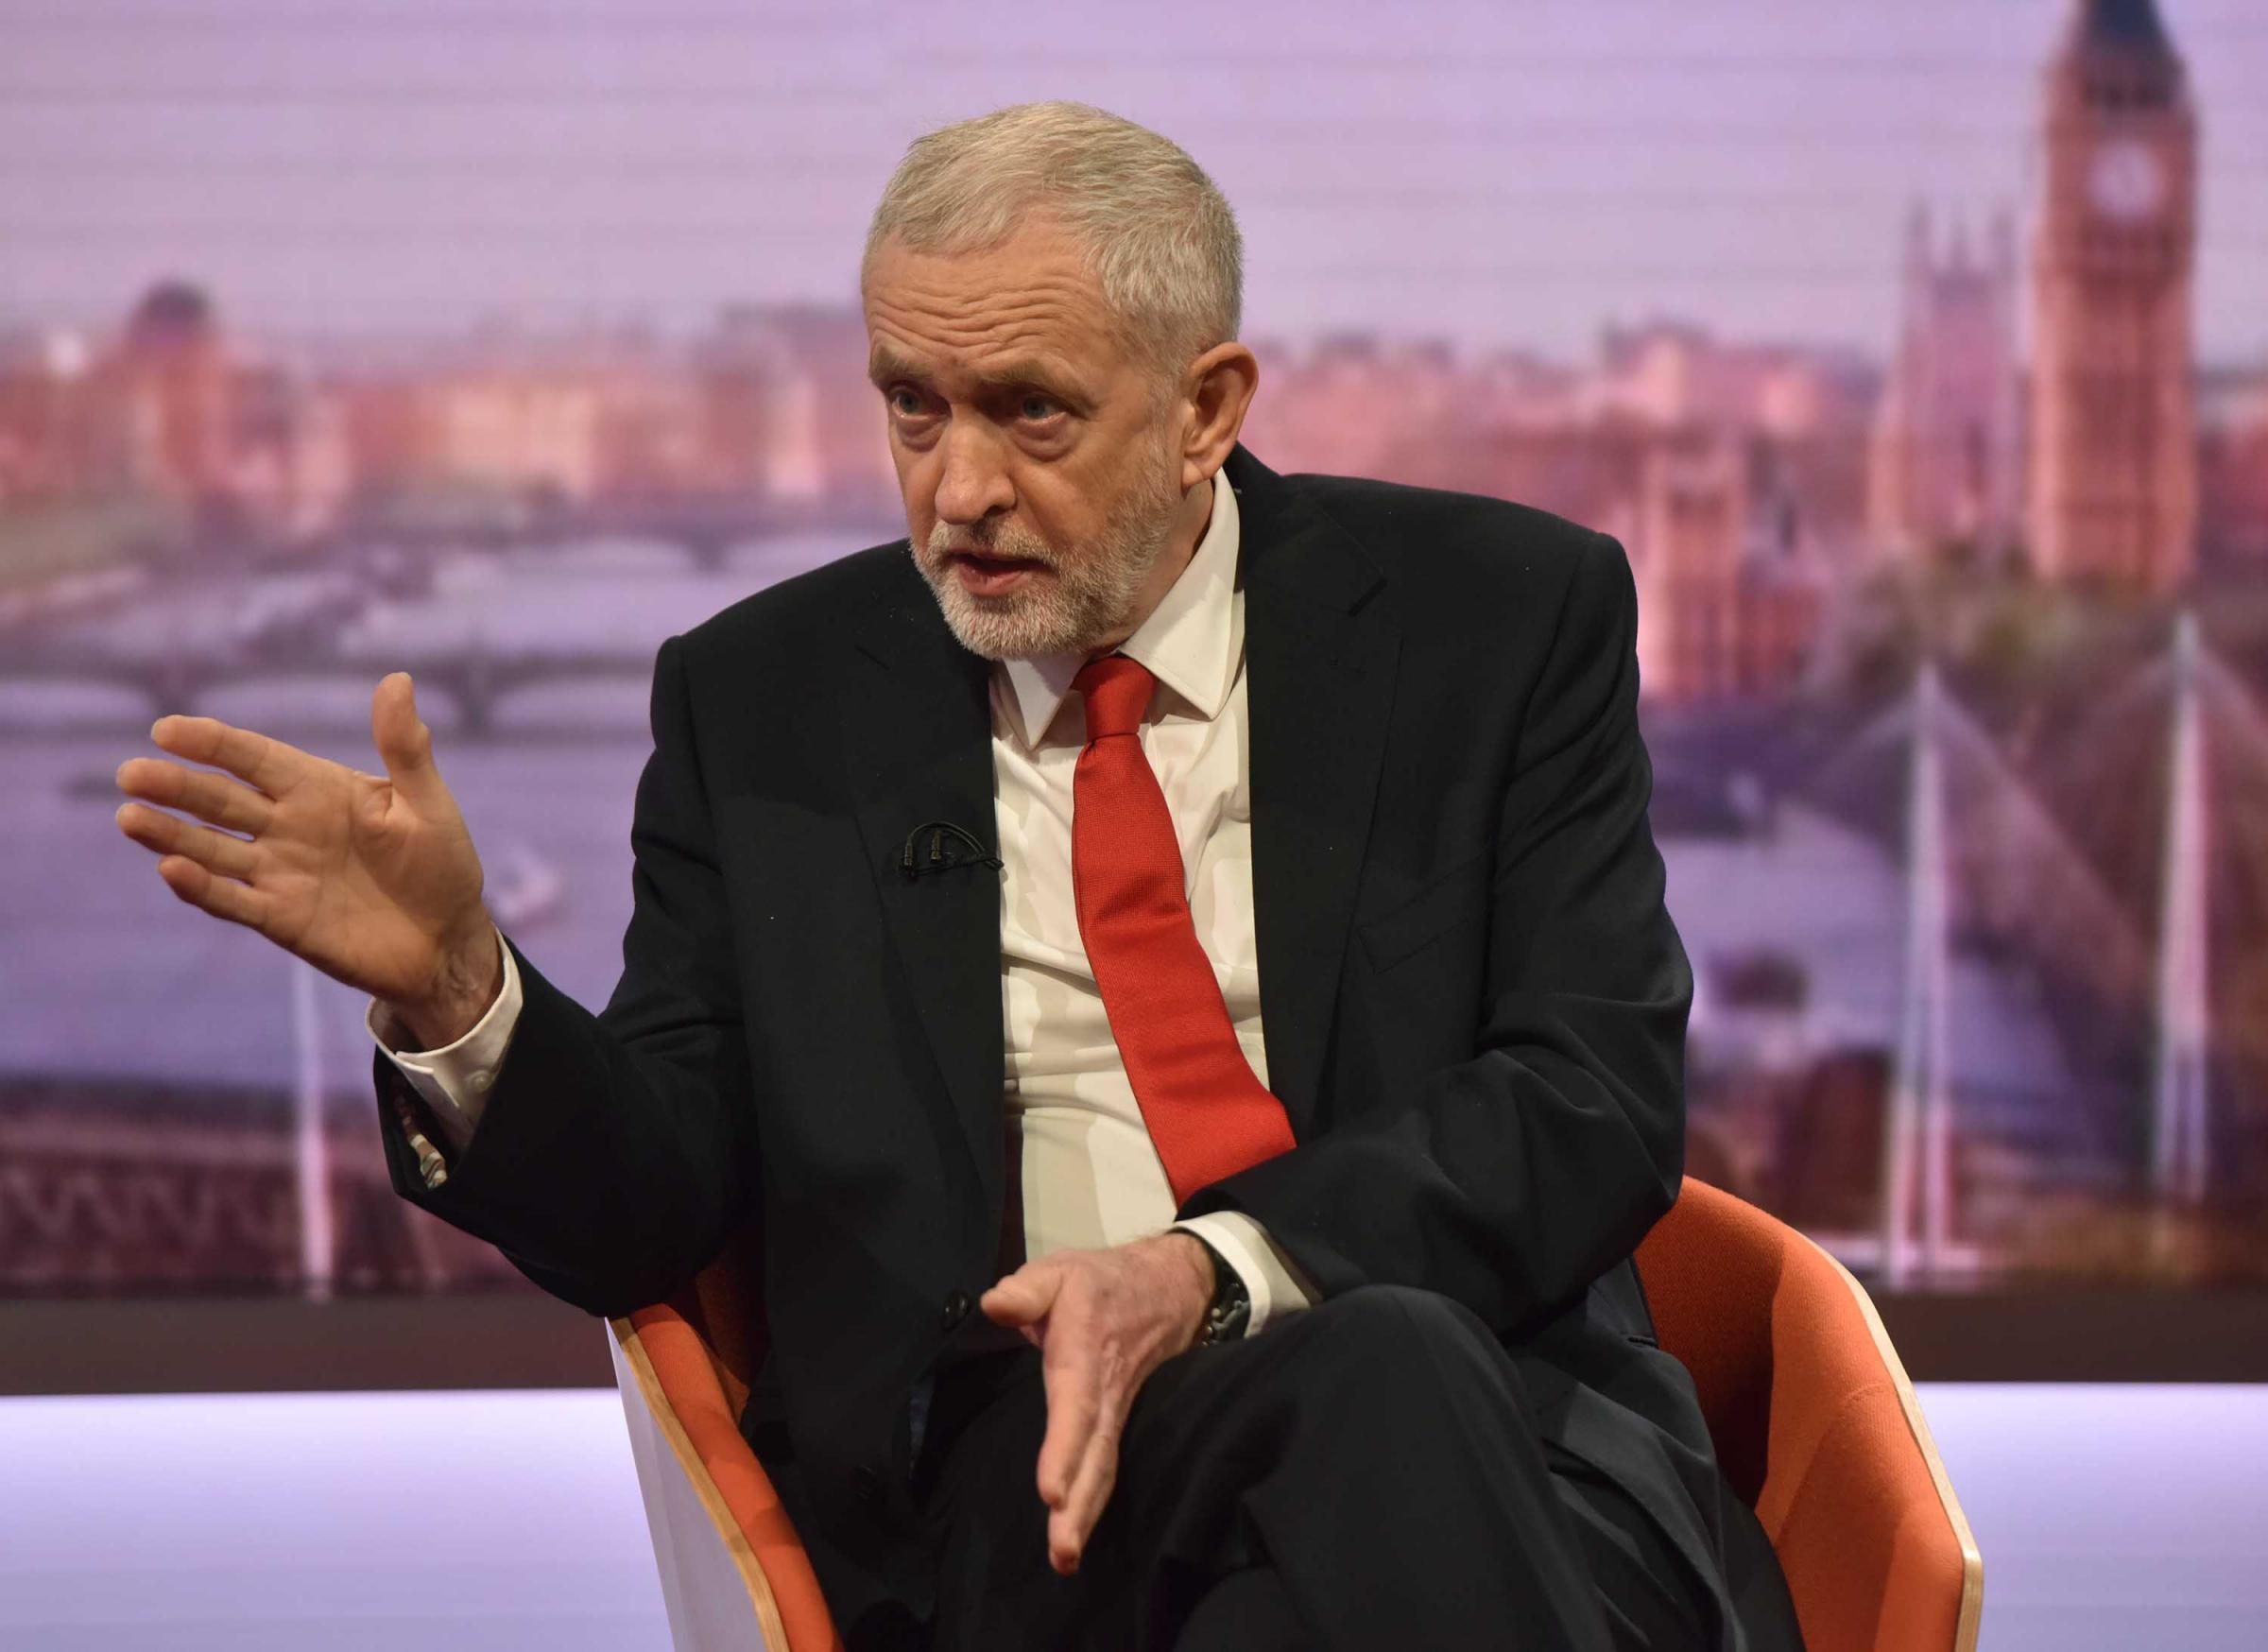 Incontrovertible?: Corbyn still sceptical about Russian culpability in Salisbury attack